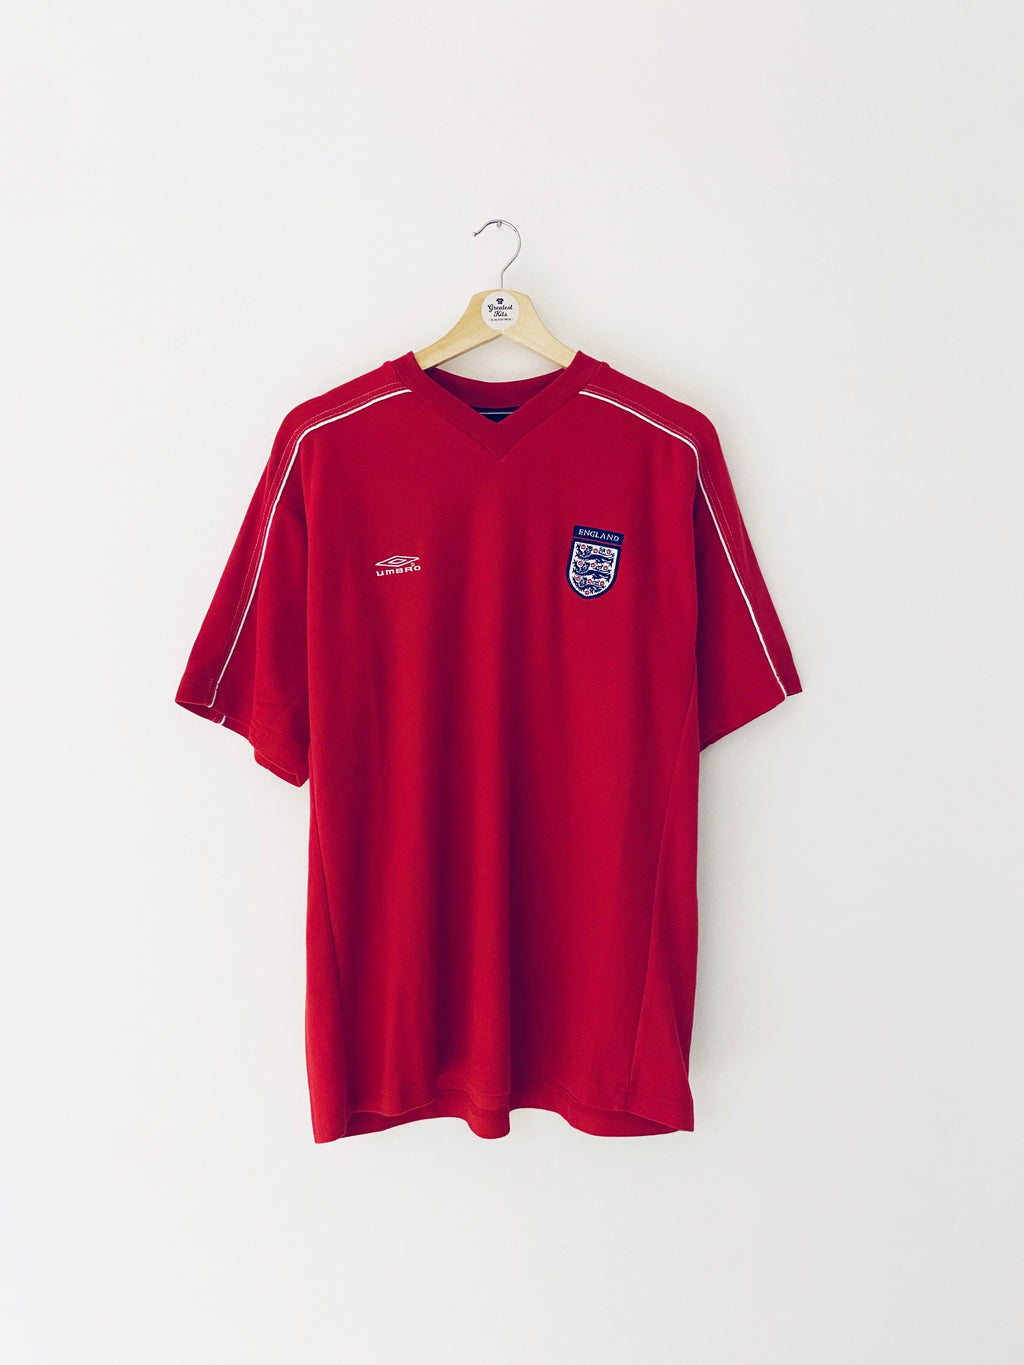 2001/02 England Training Shirt (L) 9.5/10